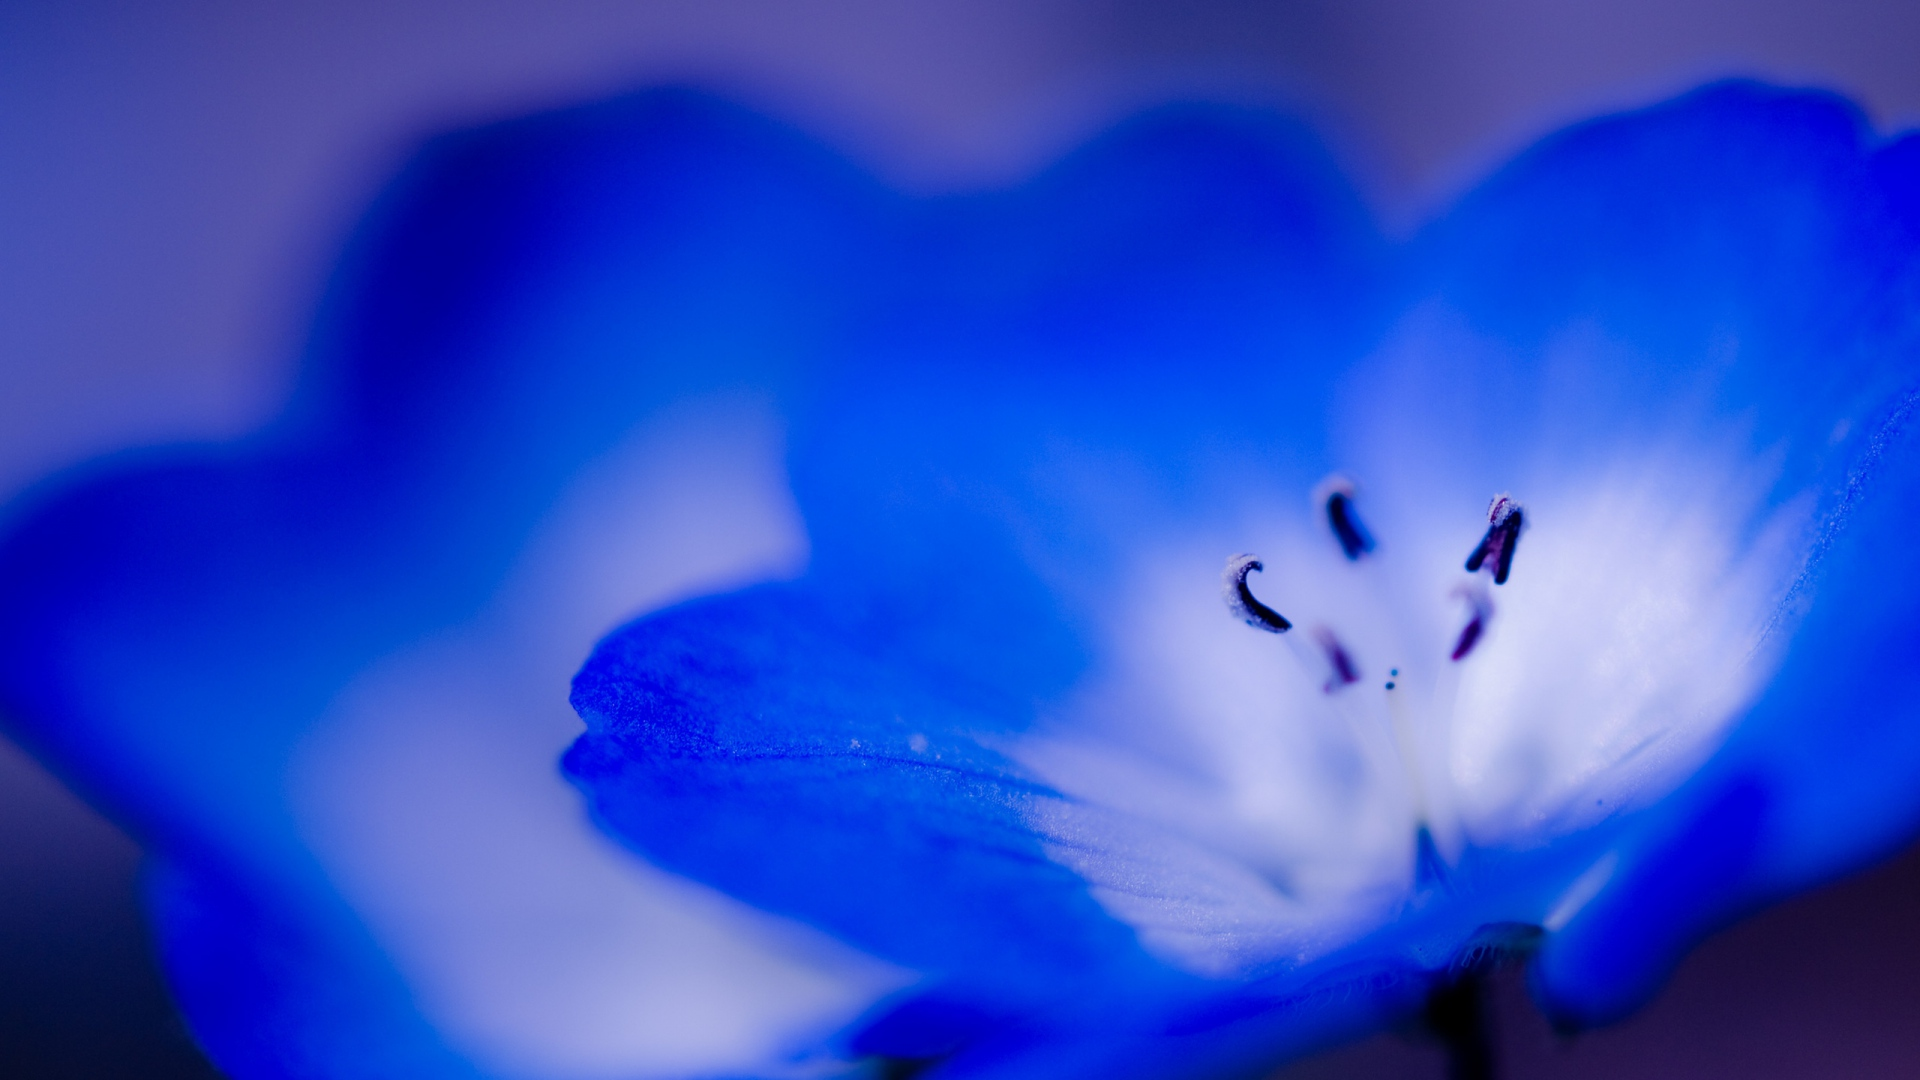 Download Wallpaper 1920x1080 Flower Blue Violet Small Close Up